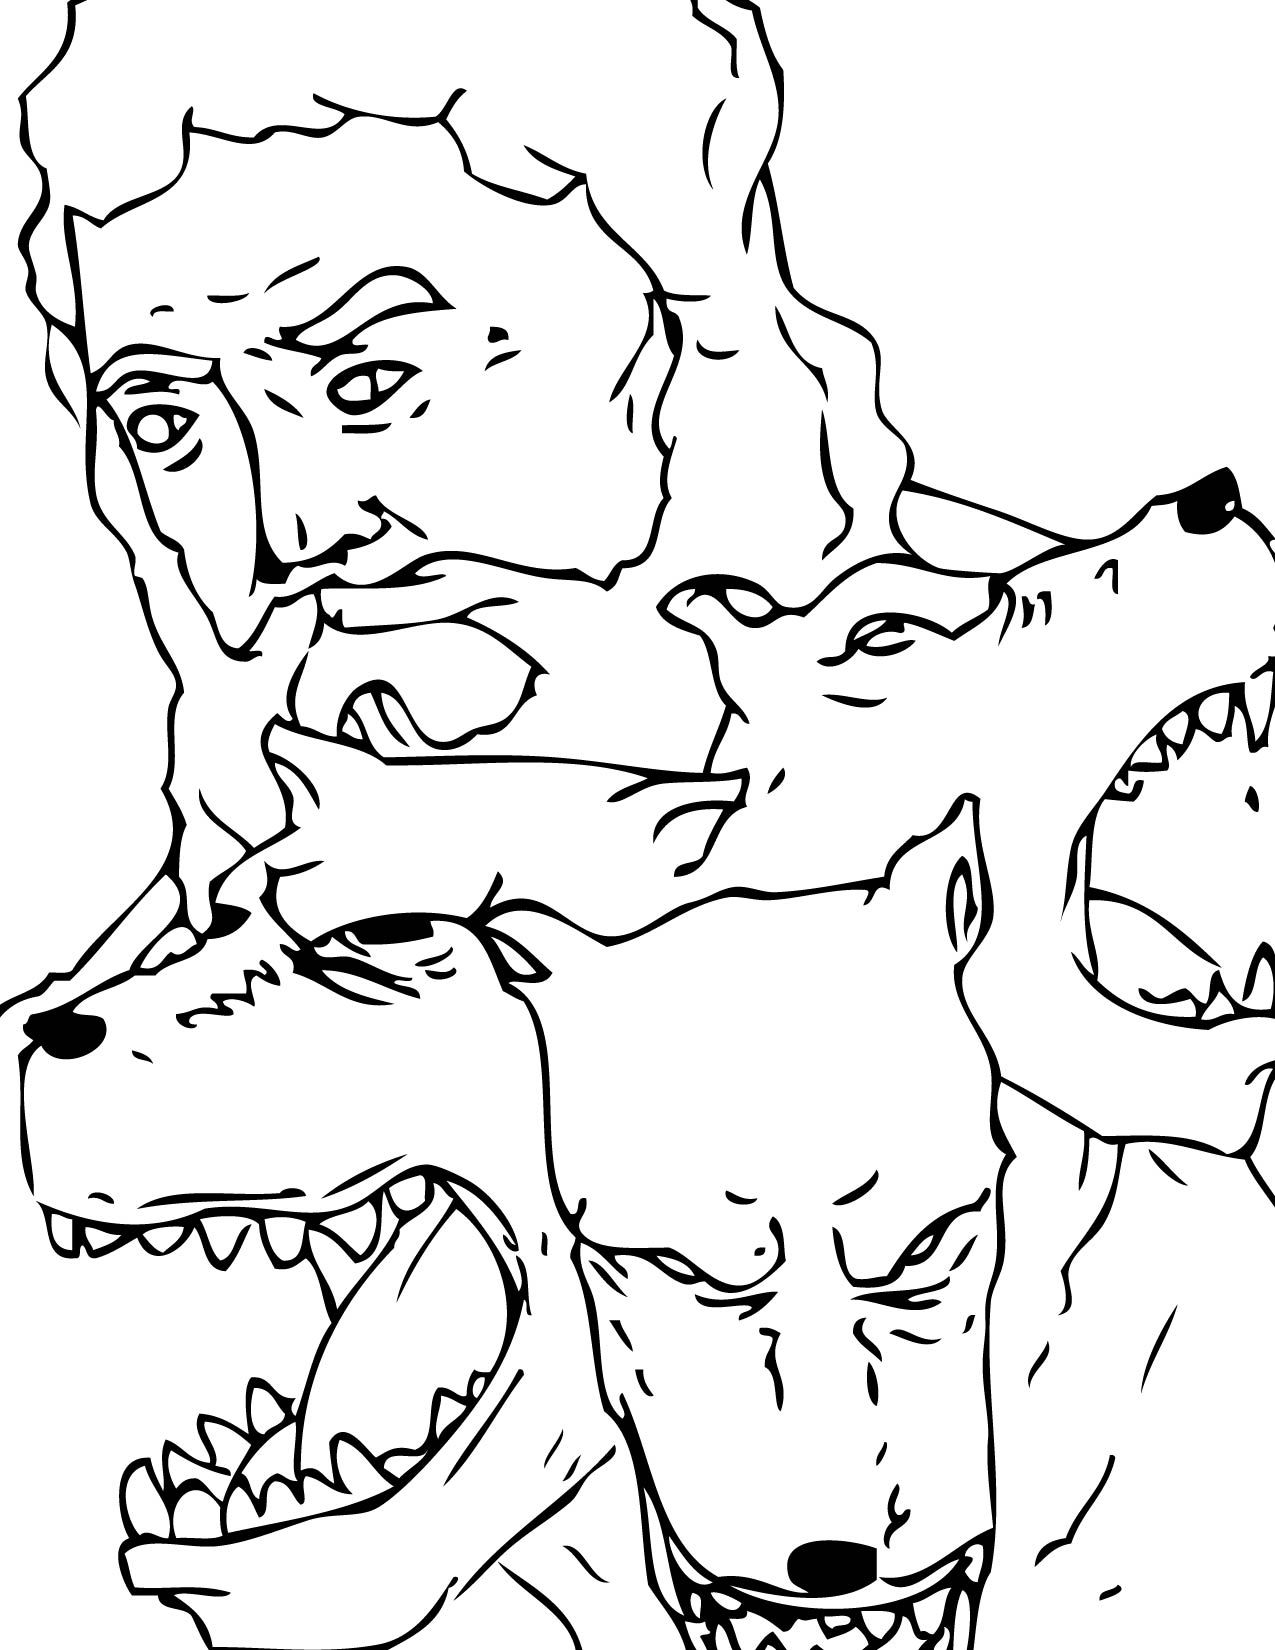 Coloring pages greek mythology -  Greek Gods Coloring Pages Coloring Pages Hades